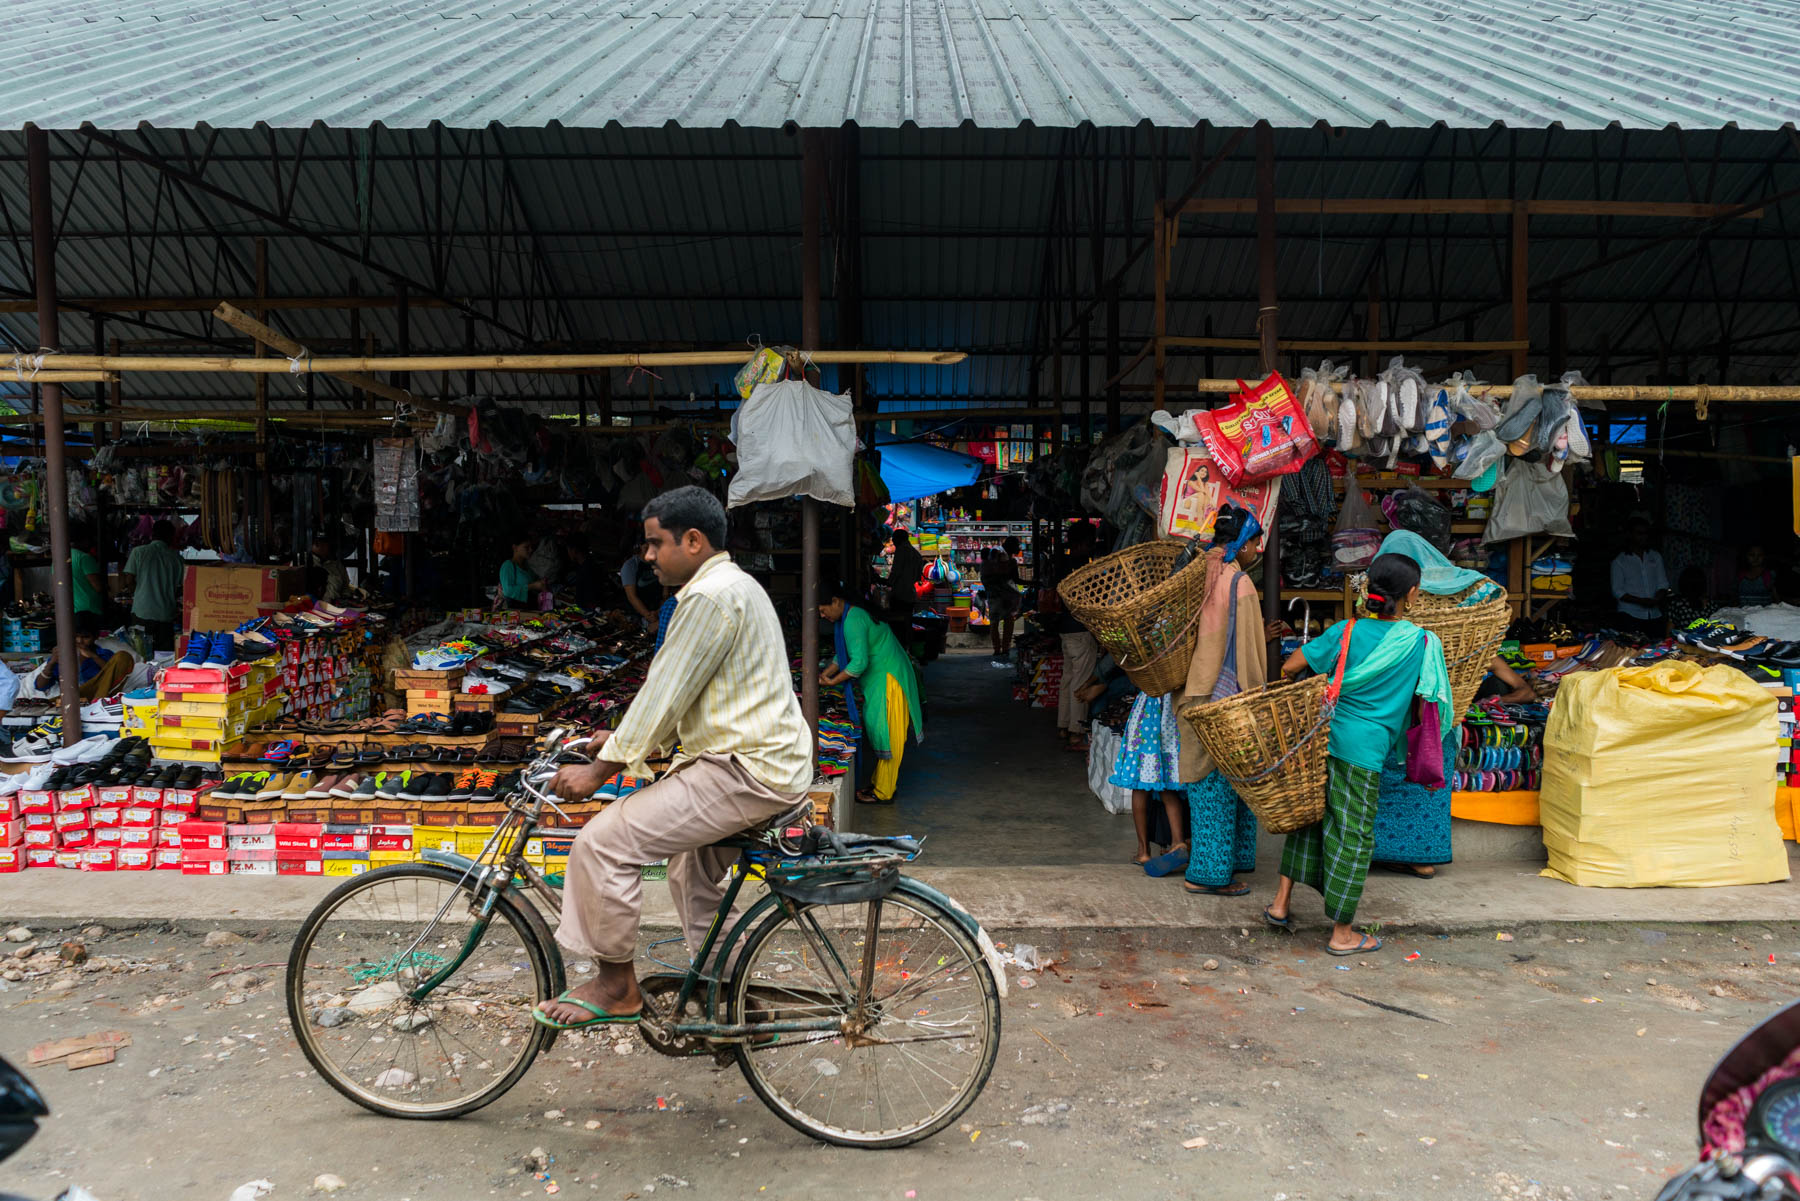 Backpacking in Arunachal Pradesh - Market in Pasighat - Lost With Purpose